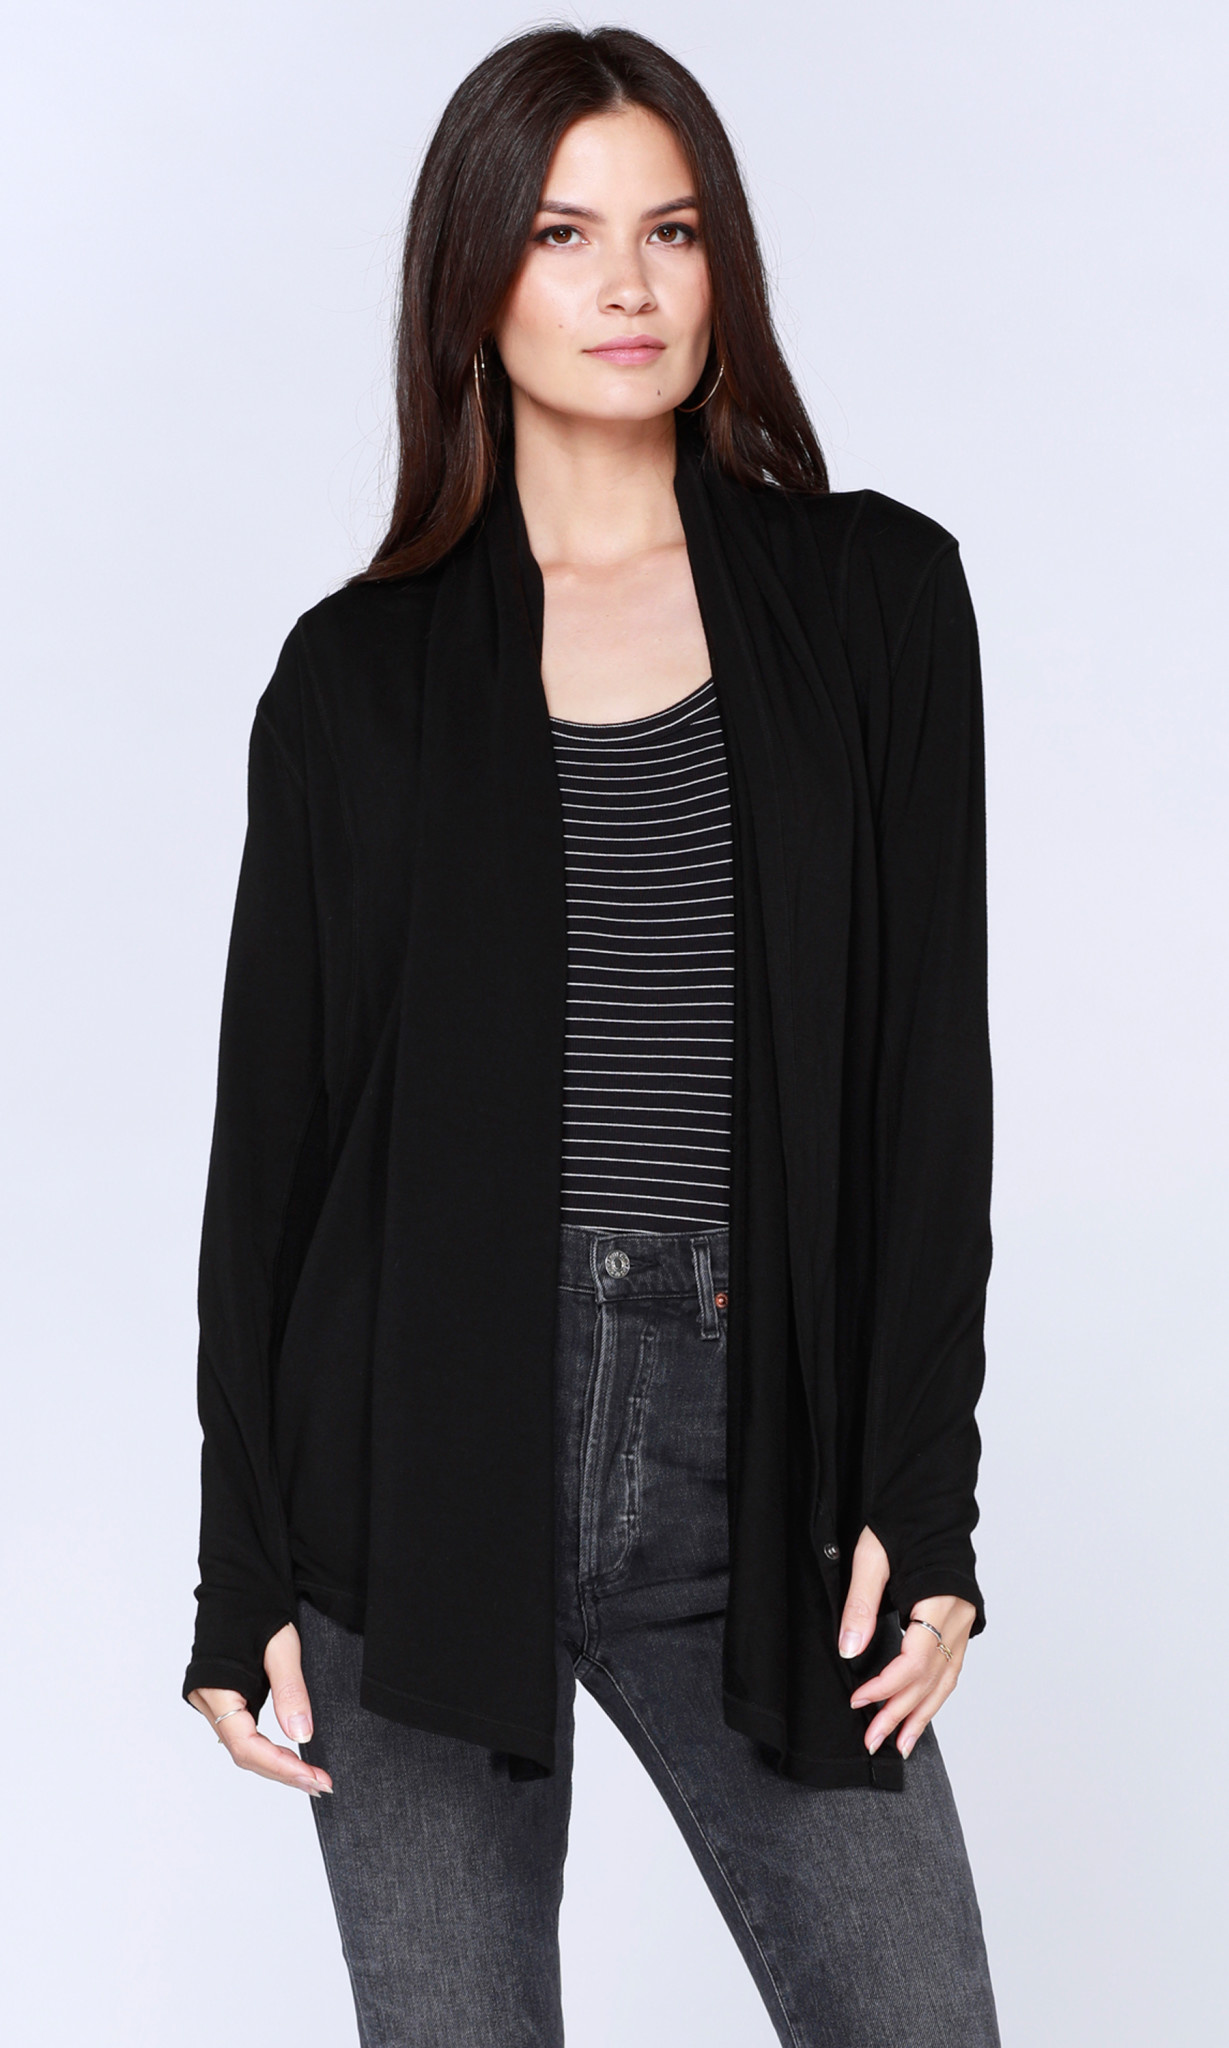 Draped Long Sleeve Top / Cardigan